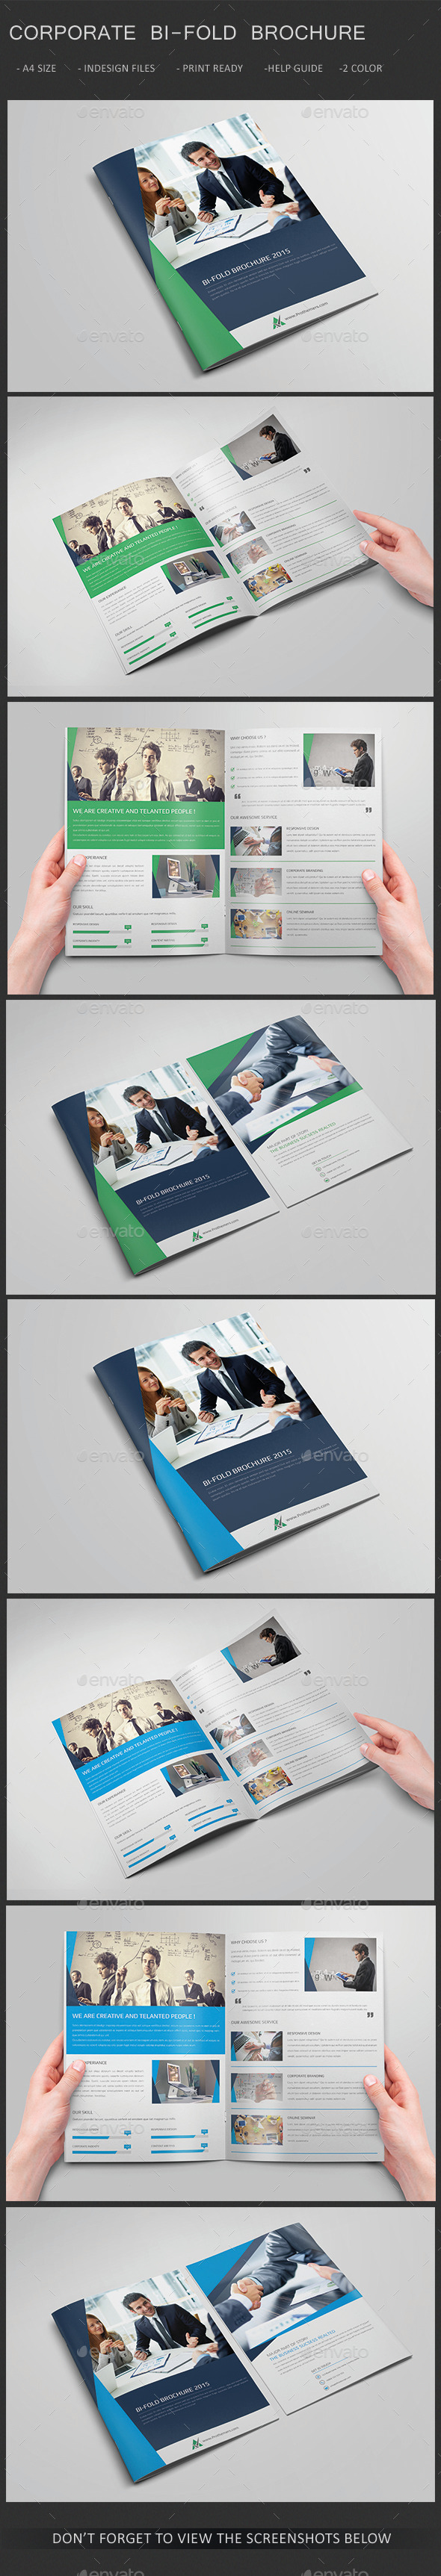 GraphicRiver Corporate Bi-fold Brochure 11386439